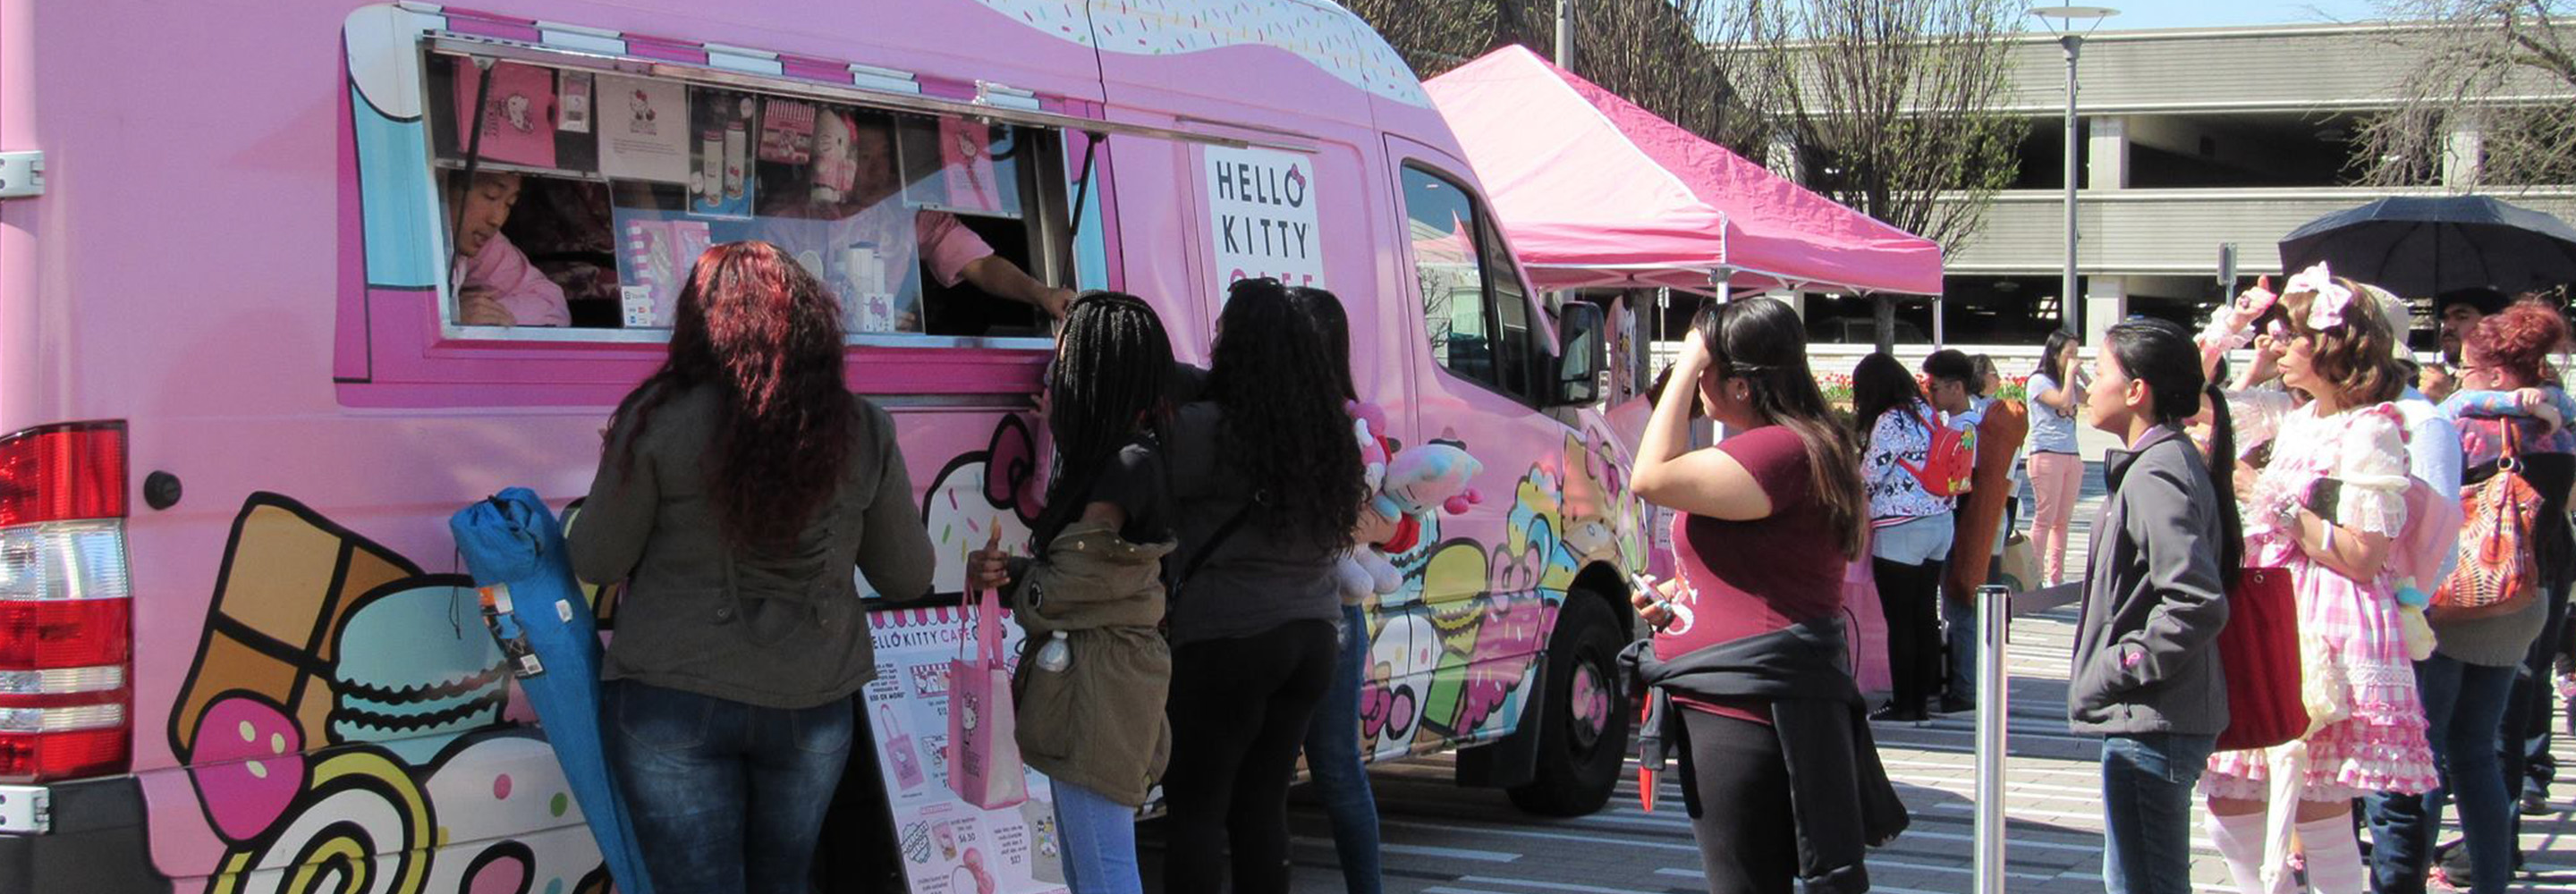 Pink Hello Kitty pop-up truck with consumers around it.